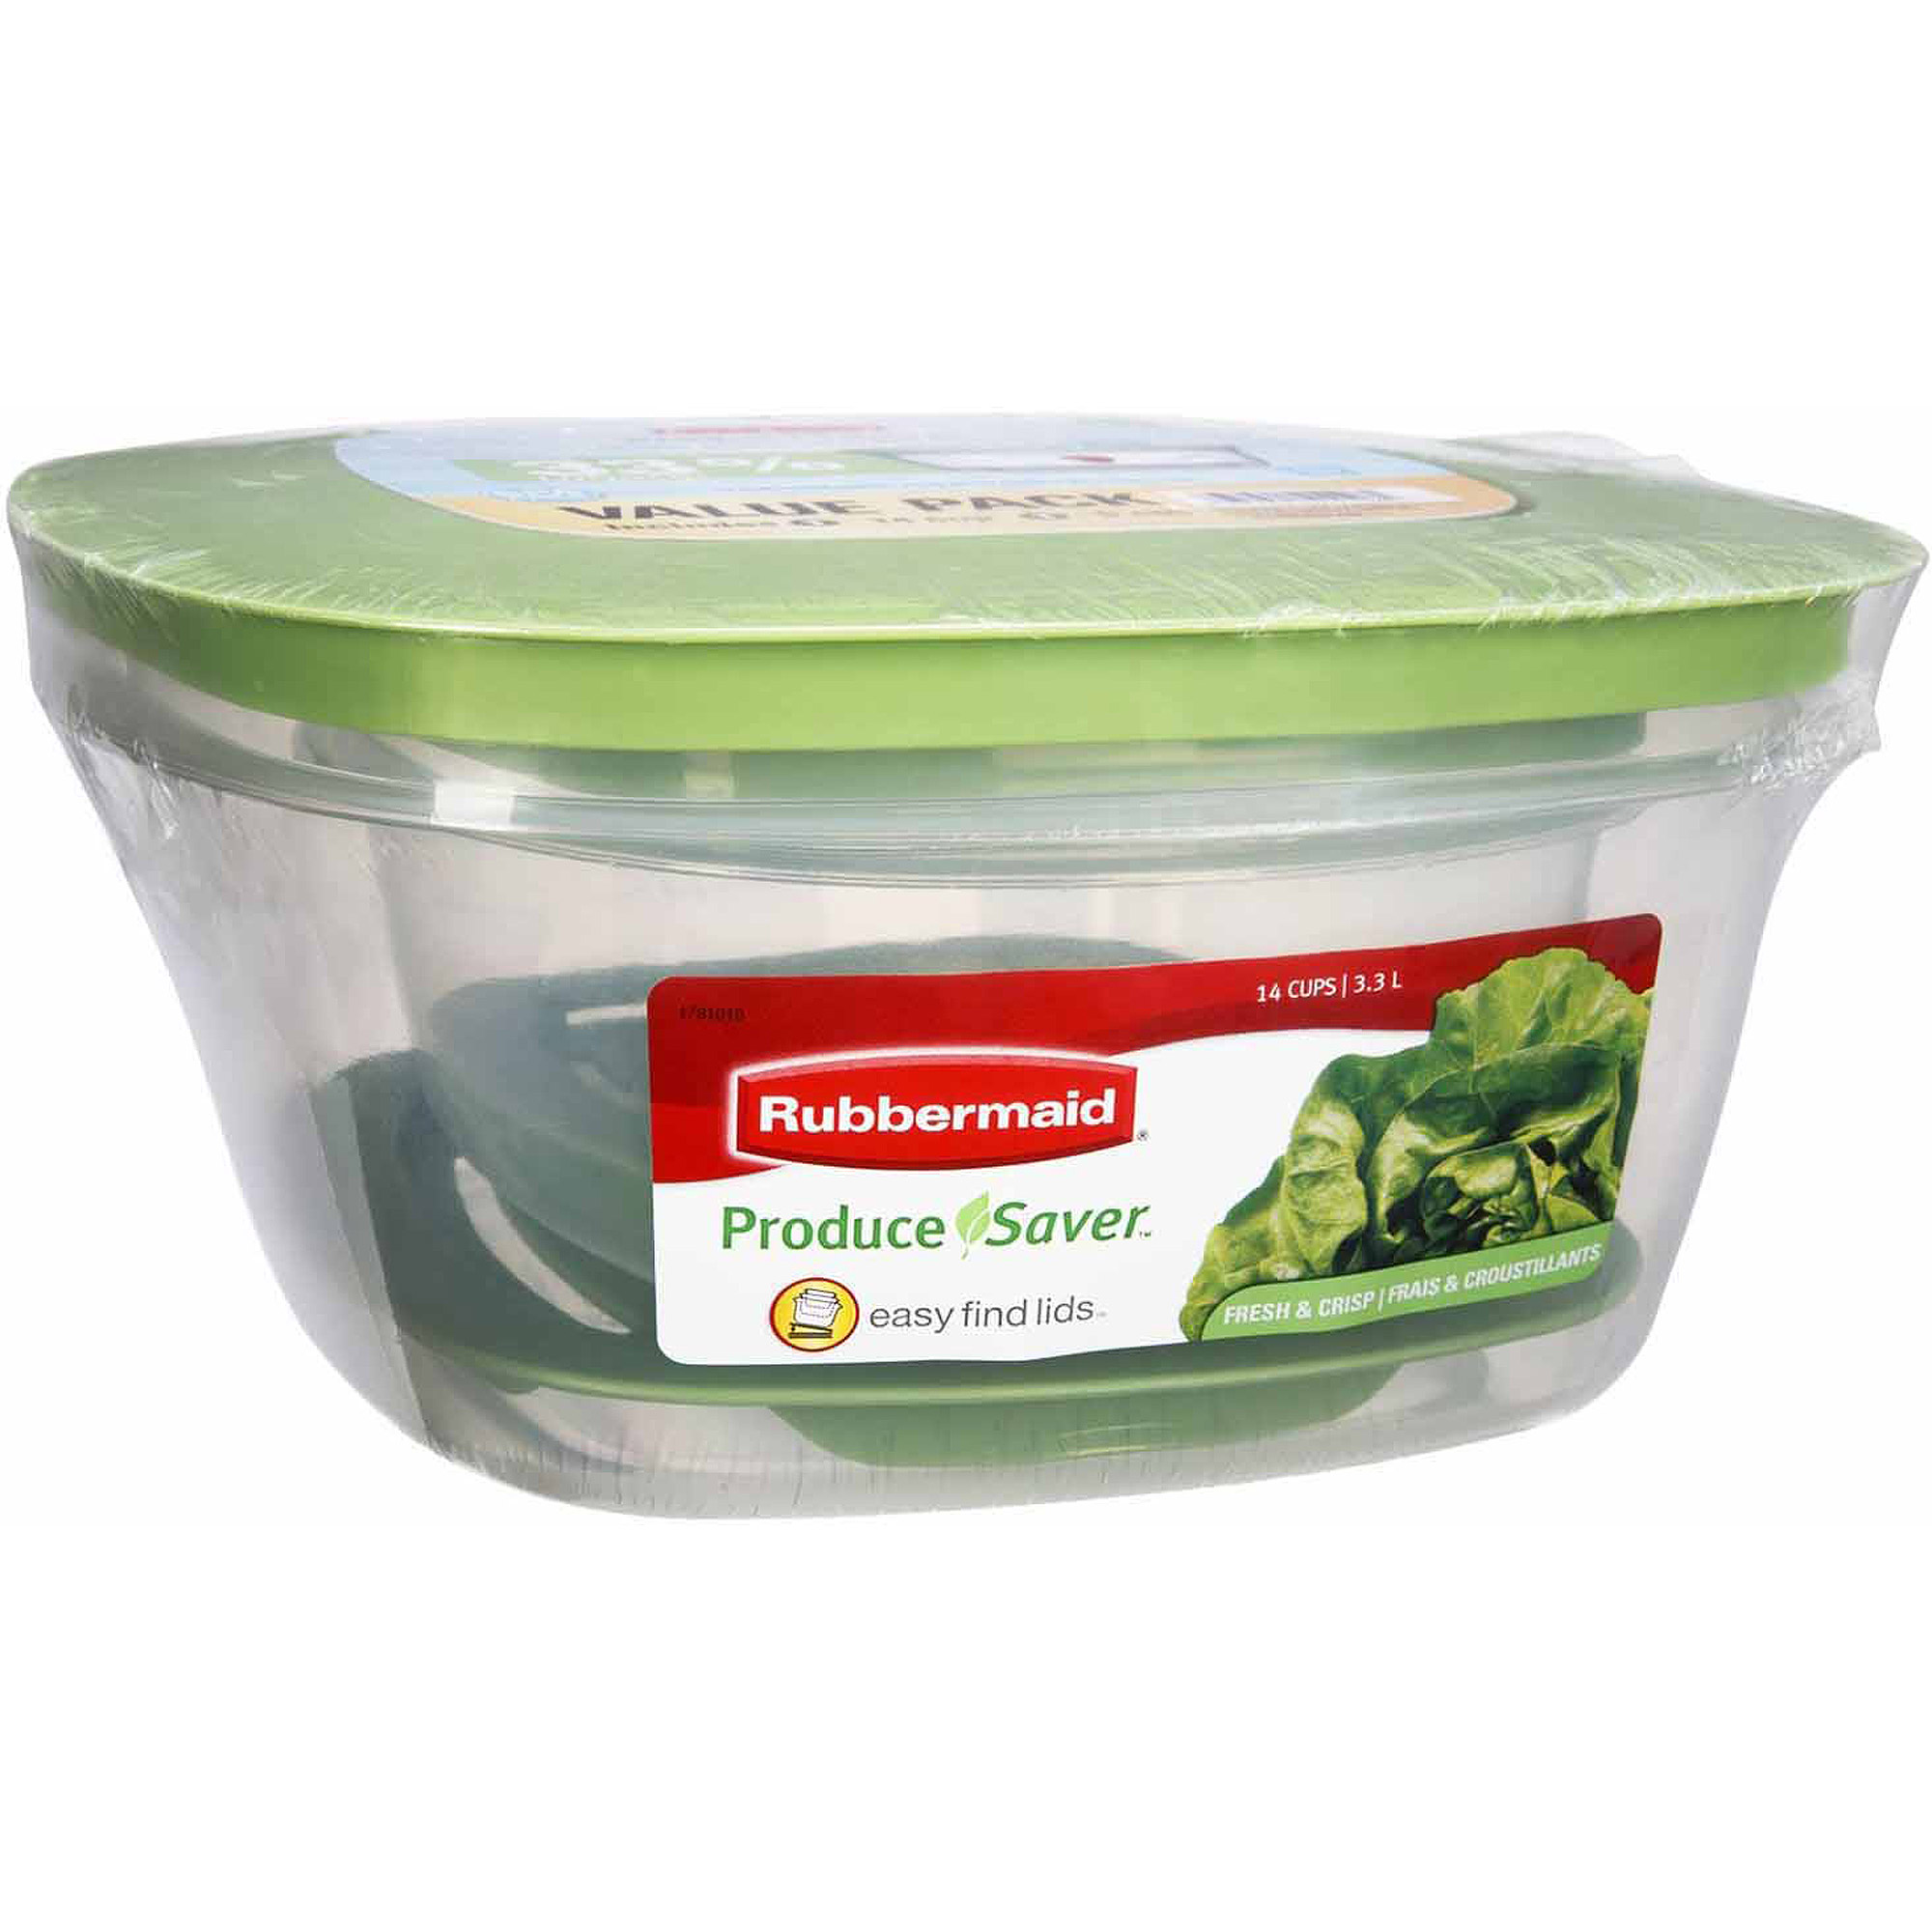 Vegetable Saver Containers Rubbermaid produce savers 14 cup 2pk walmart workwithnaturefo